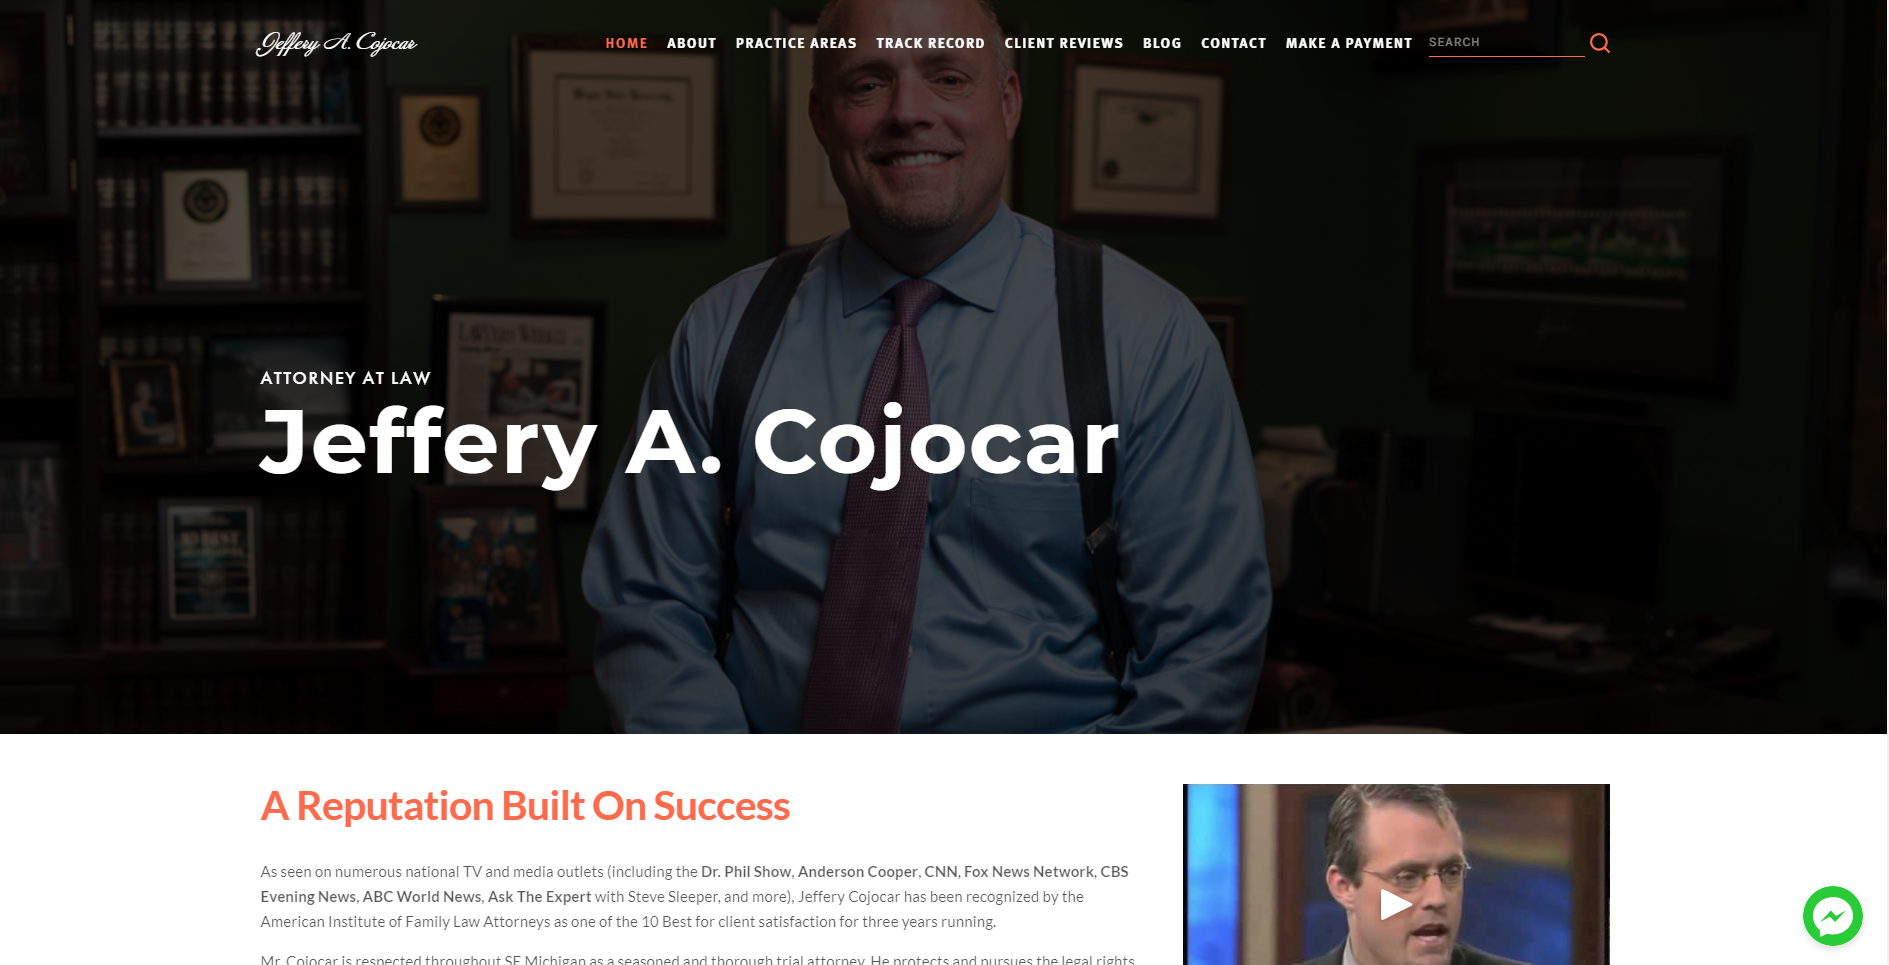 cojocar website 2.png